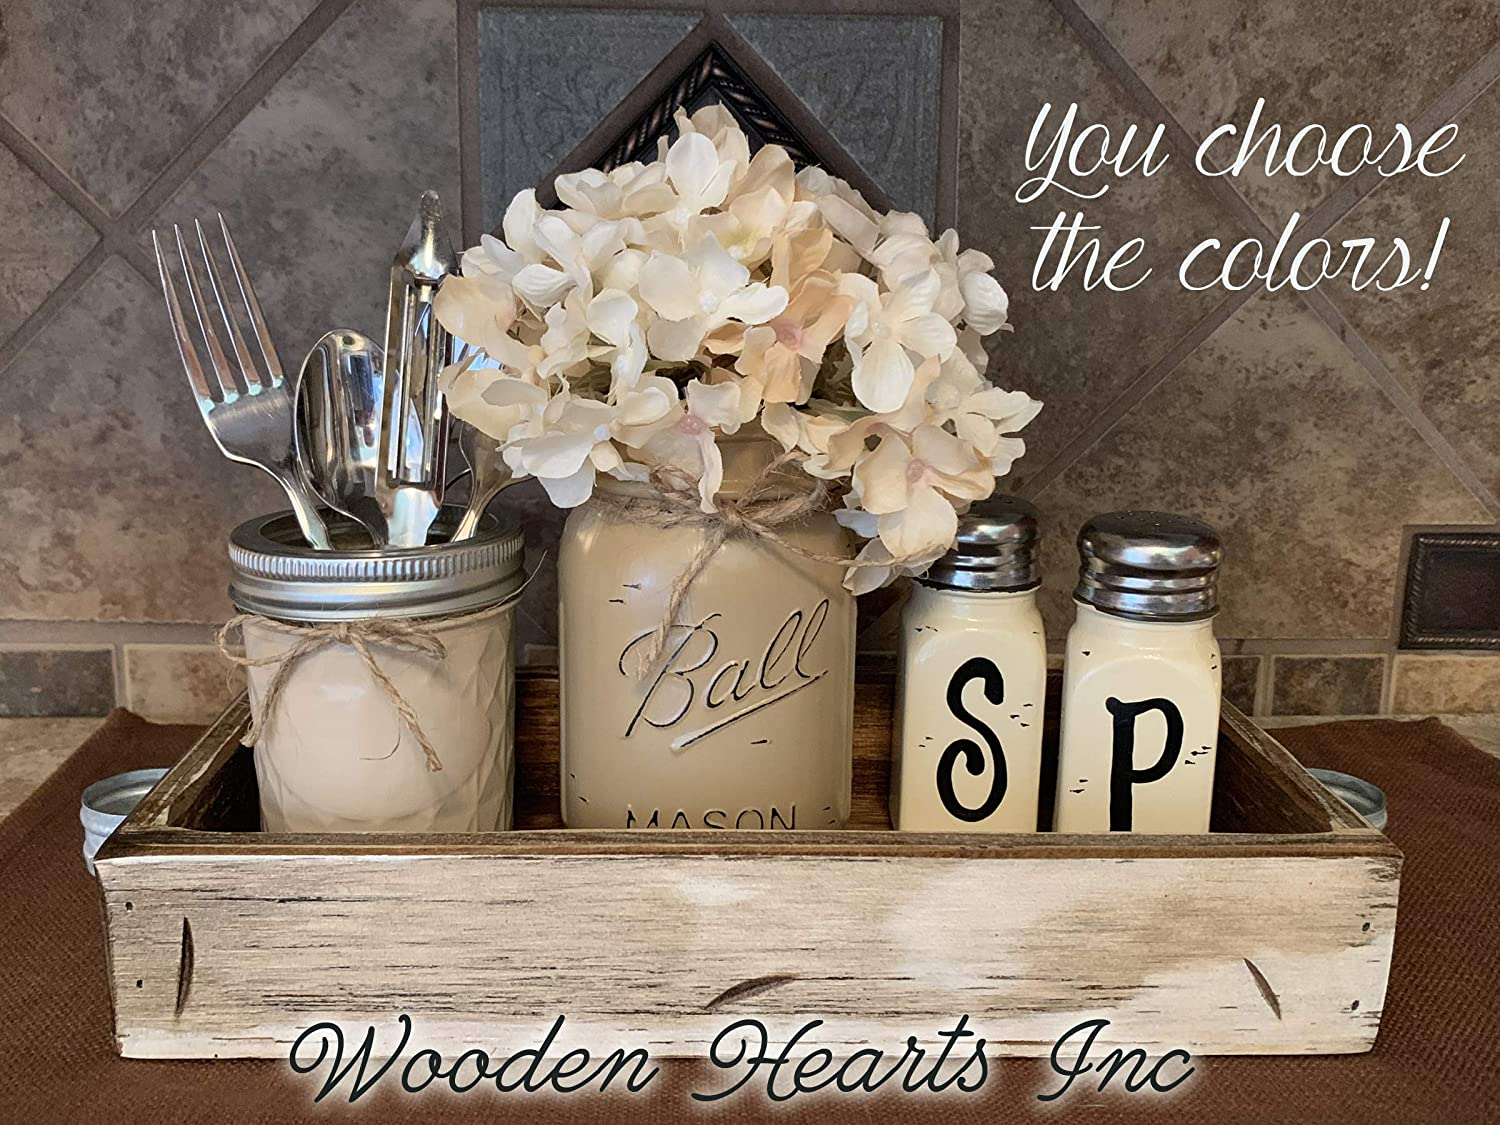 Ball Mason Jar KITCHEN Table Centerpiece SET in Antique Rustic Tray ~Salt  and Pepper Shakers, Pint Vase Jar with FLOWER~Distressed Painted Jars, ...